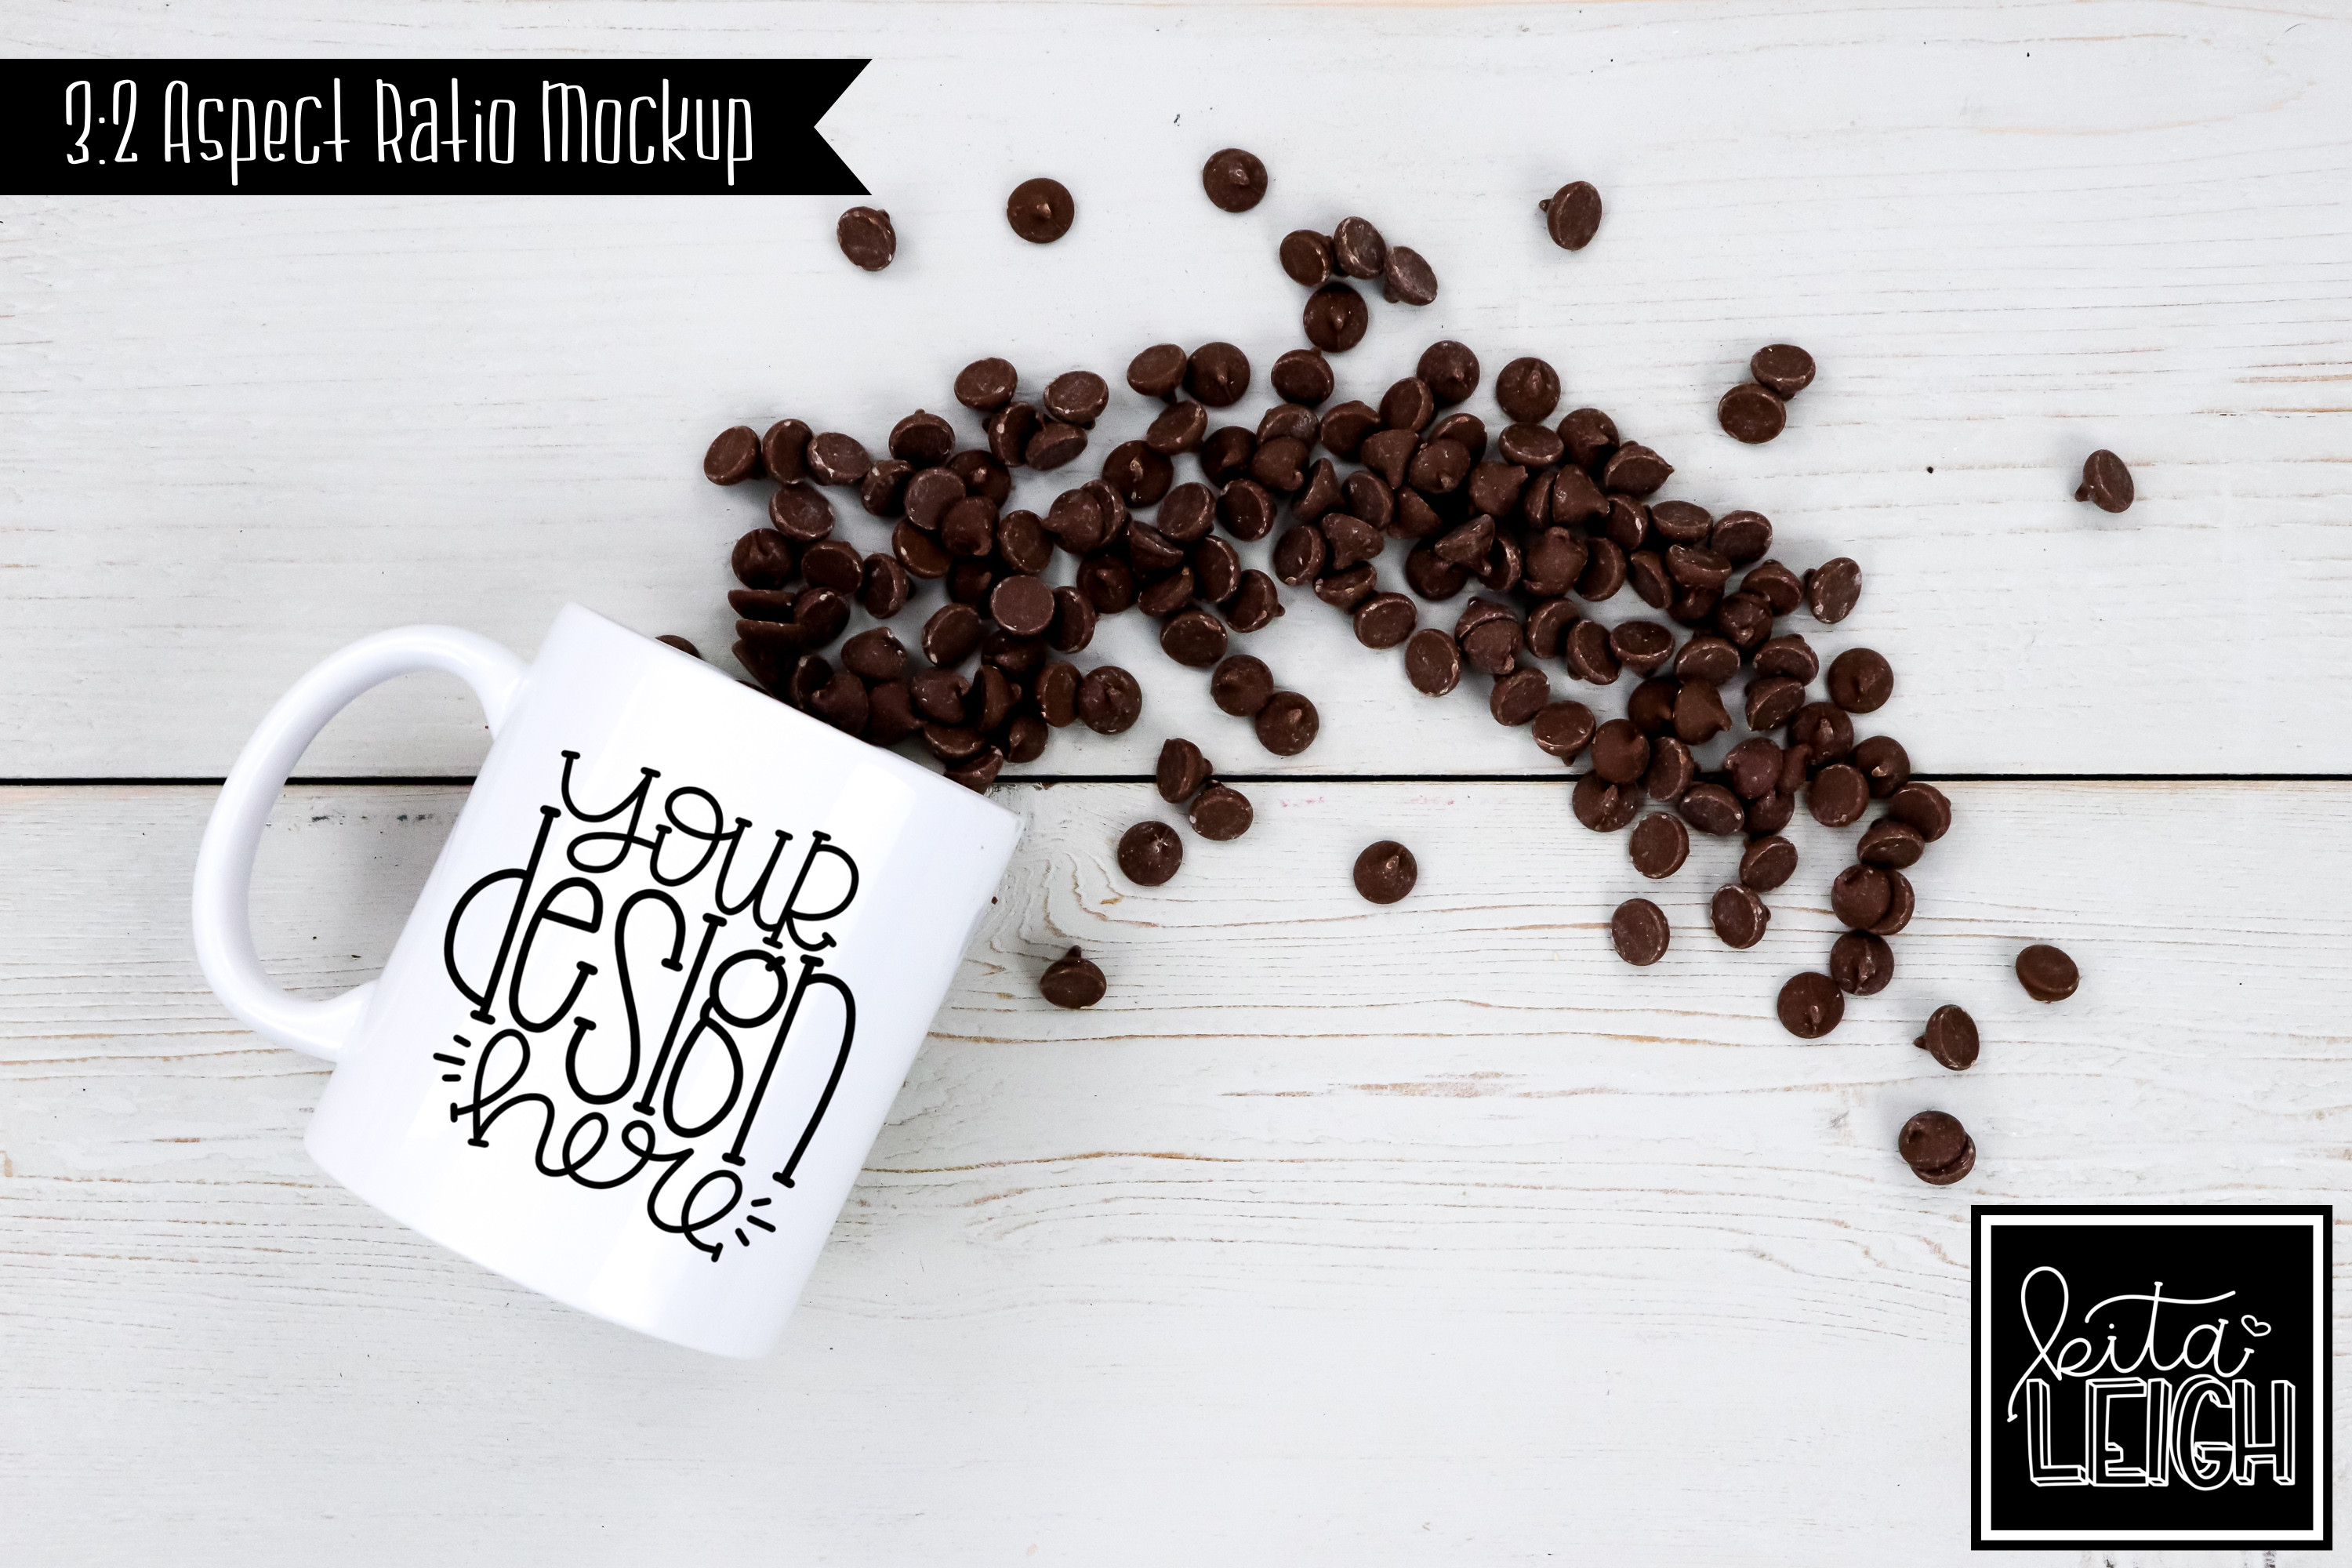 11 oz Mug Mockup with Chocolate, Coffee, Tea, and Mallows example image 2